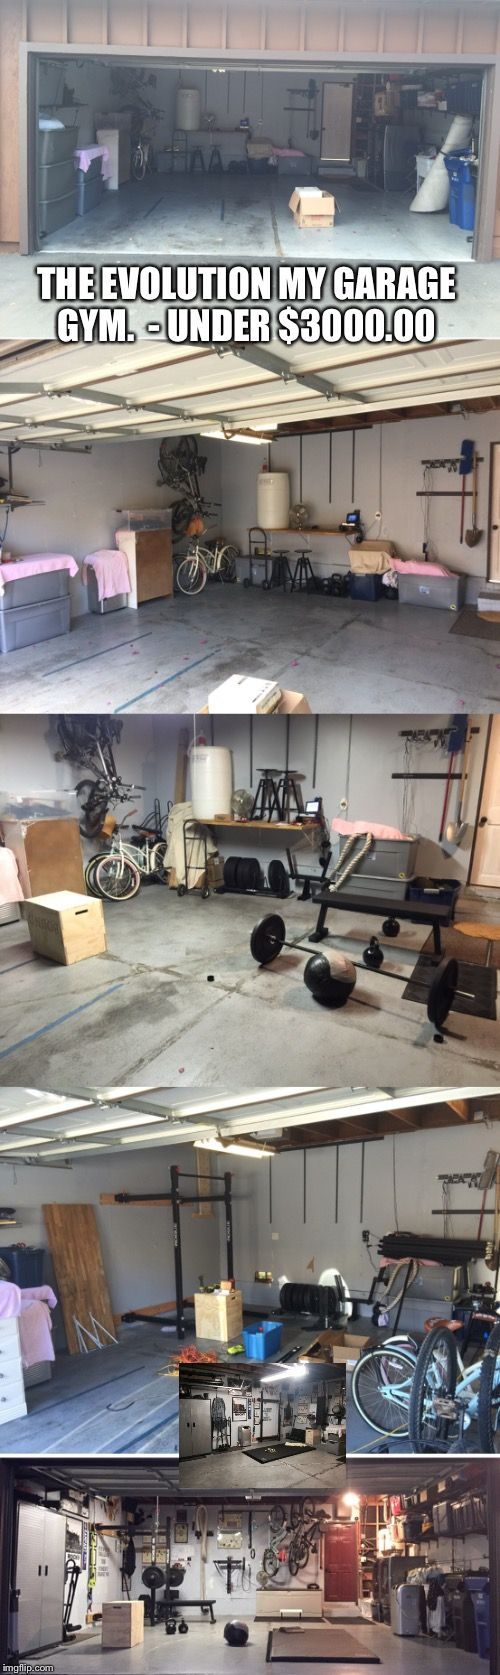 Crossfit garage gym (rogue fitness)